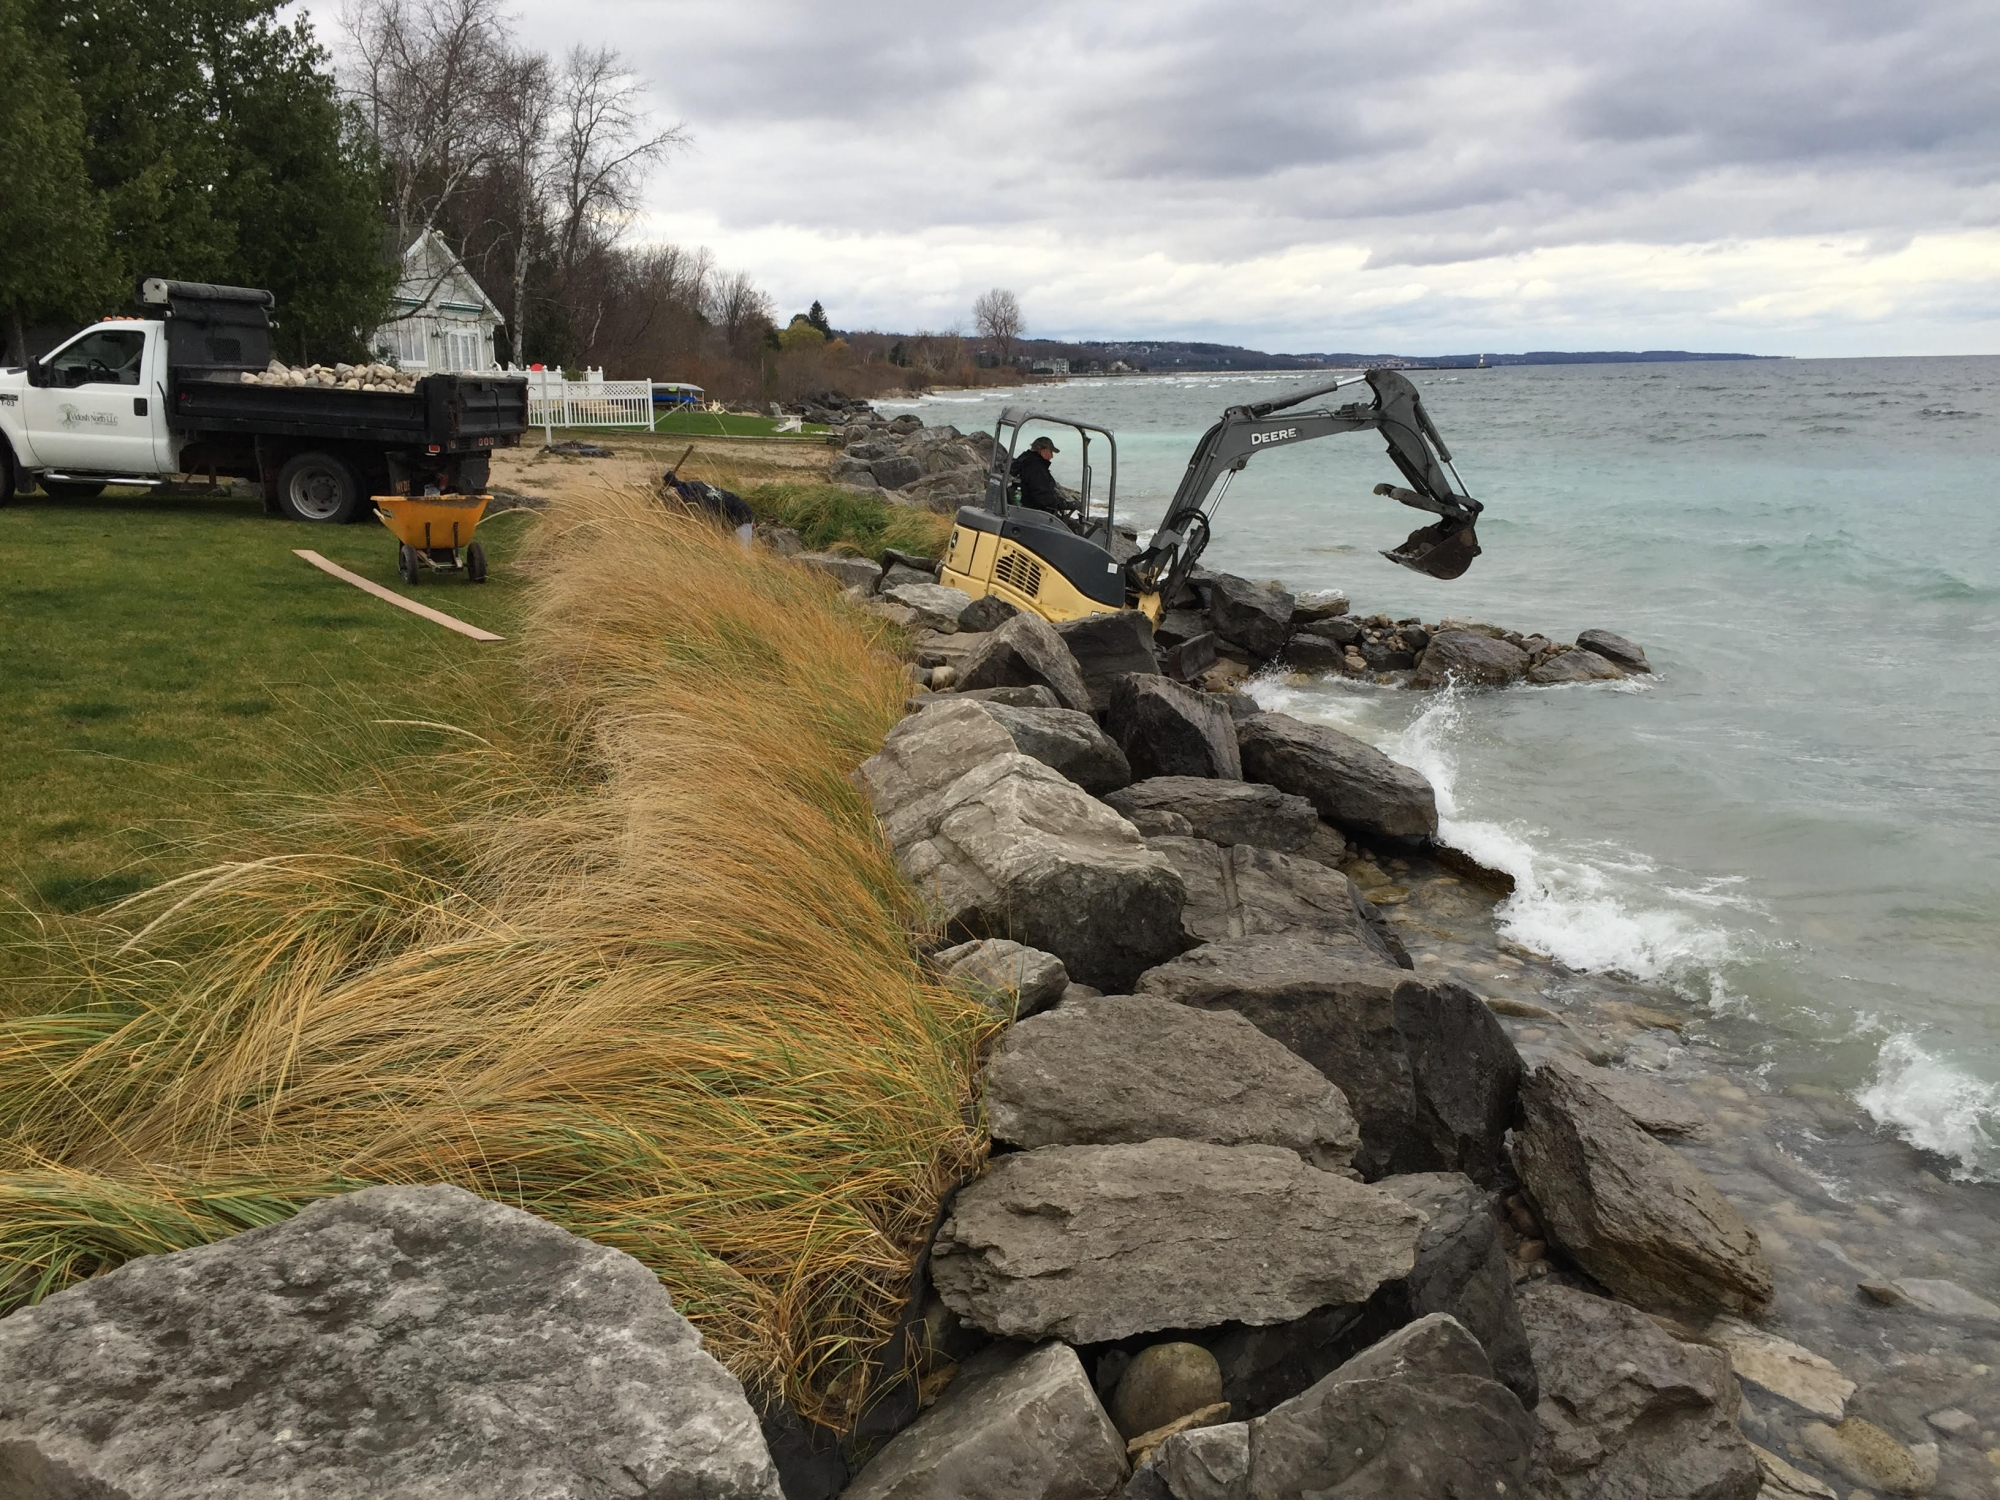 Shoreline Protection and Dunegrass Planting to Prevent Erosion on Lake Michigan